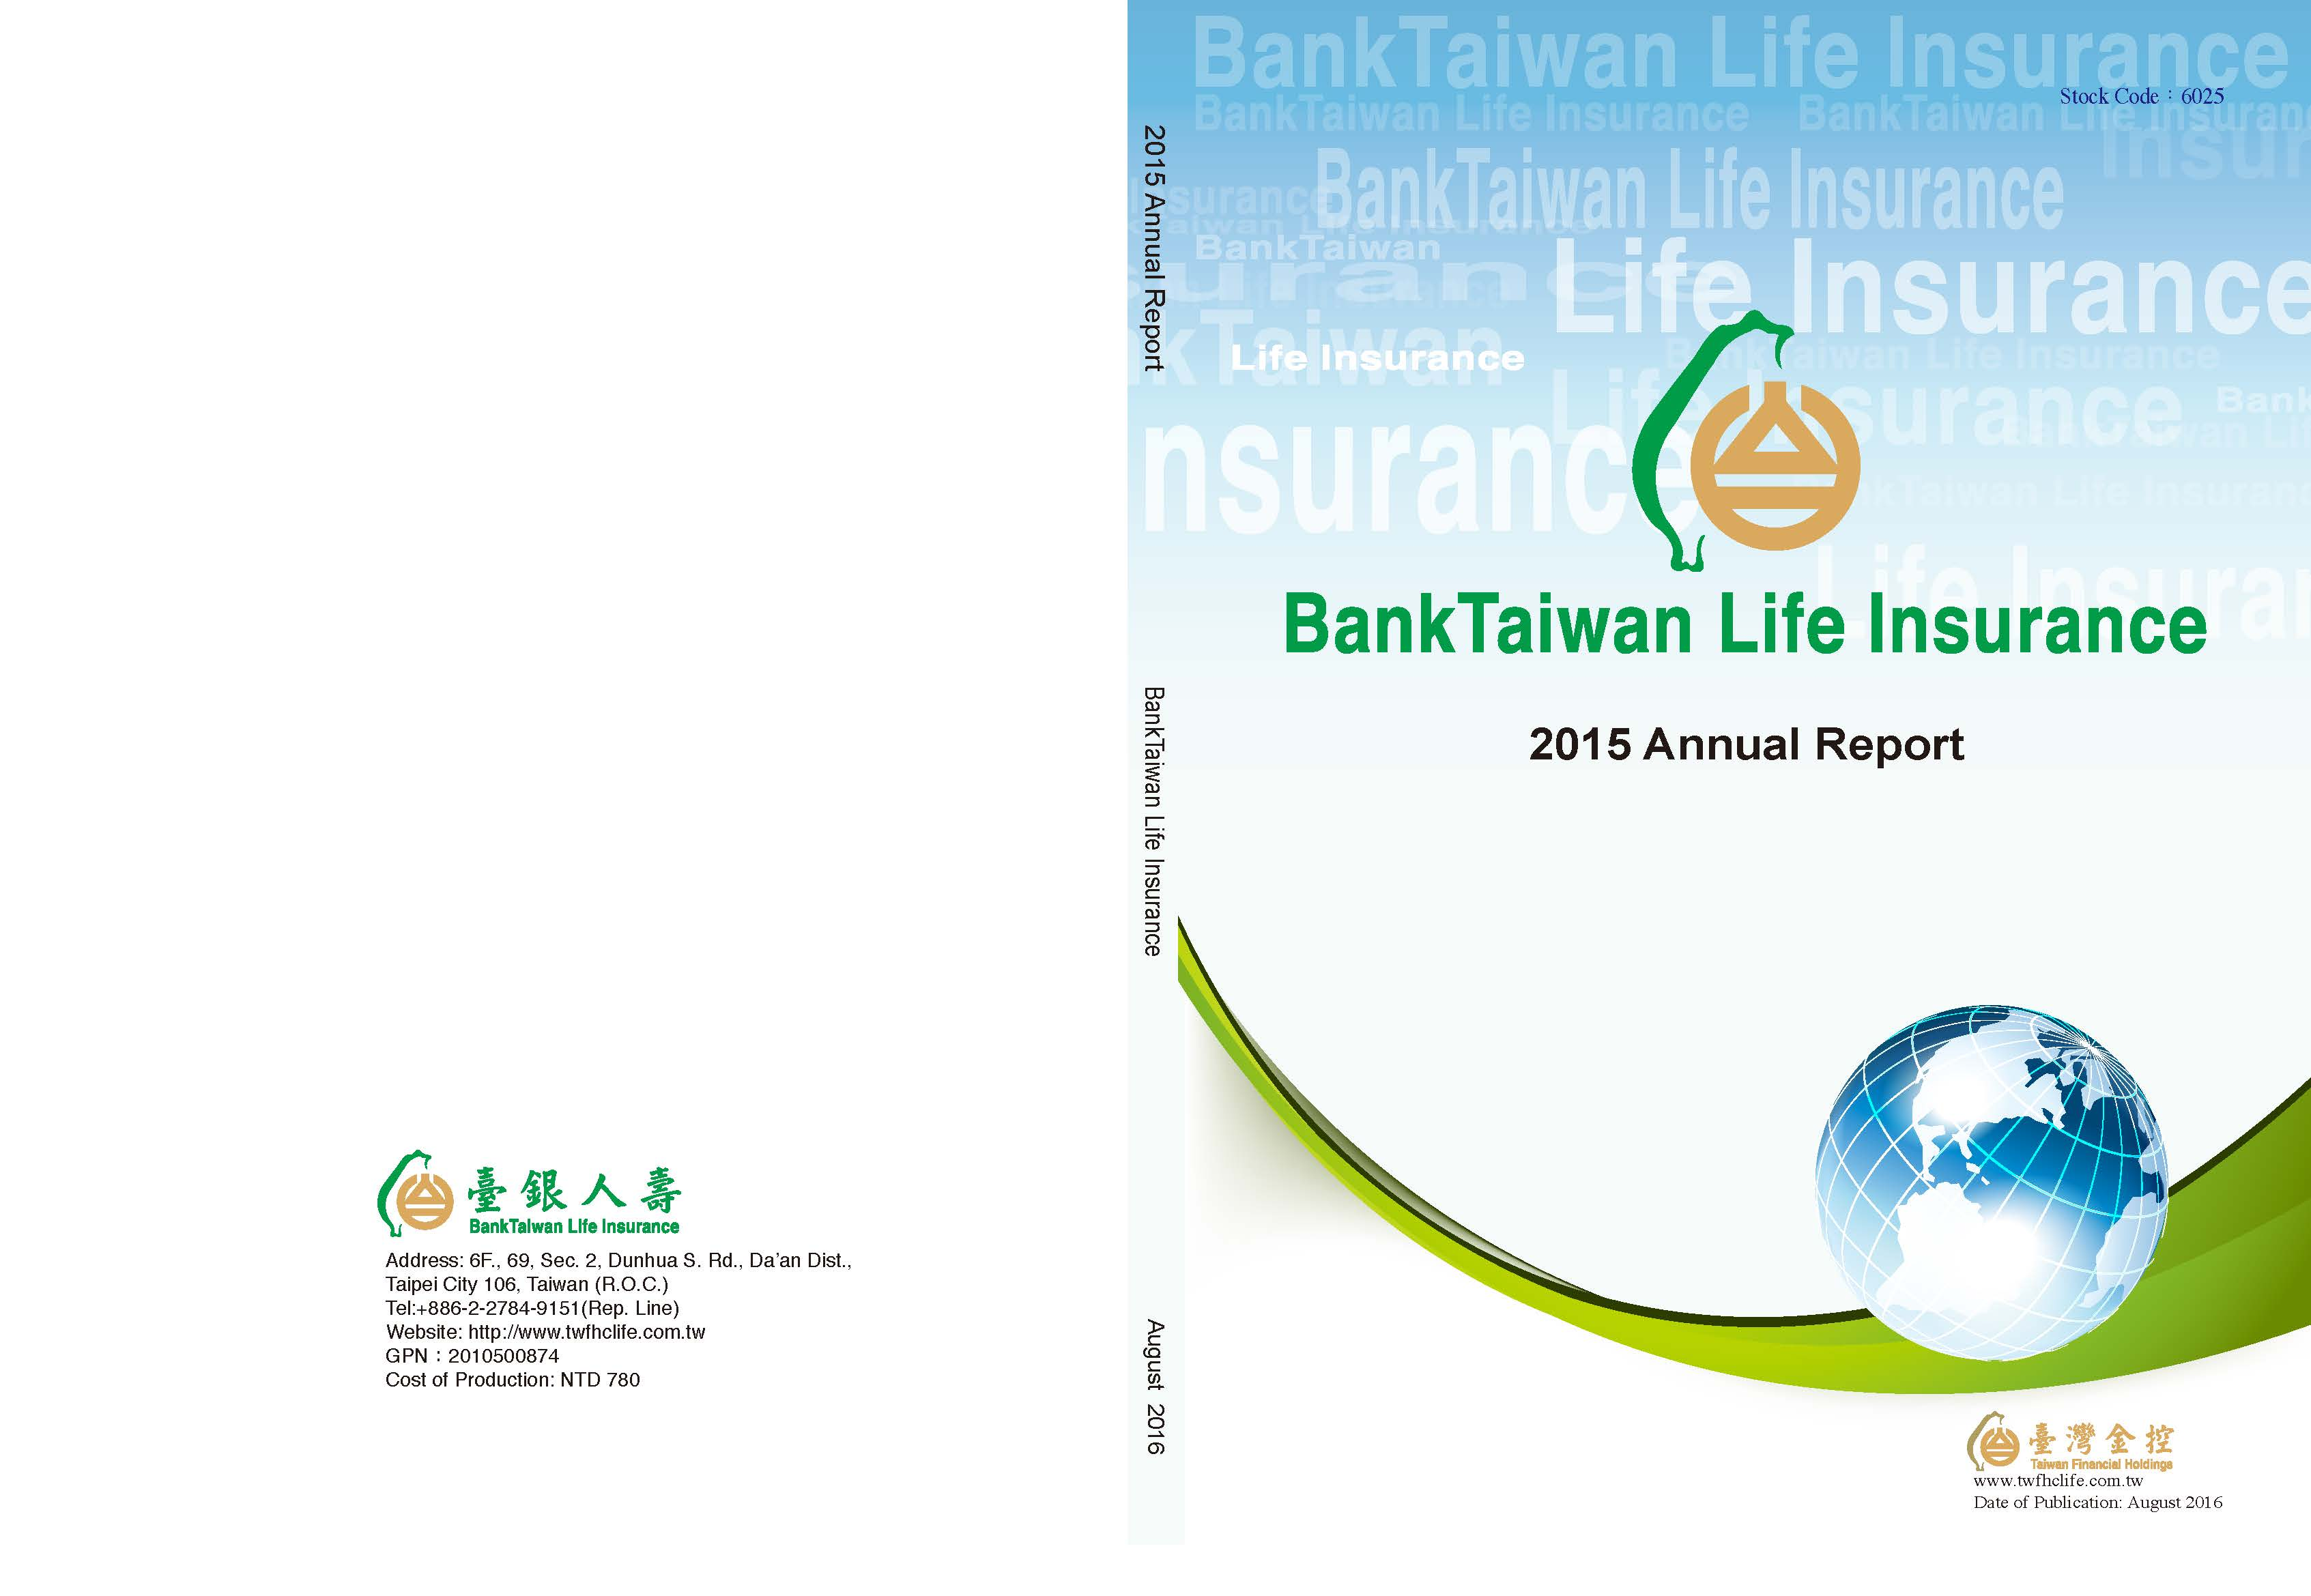 BankTaiwan Life Insurance 2015 Annual Report